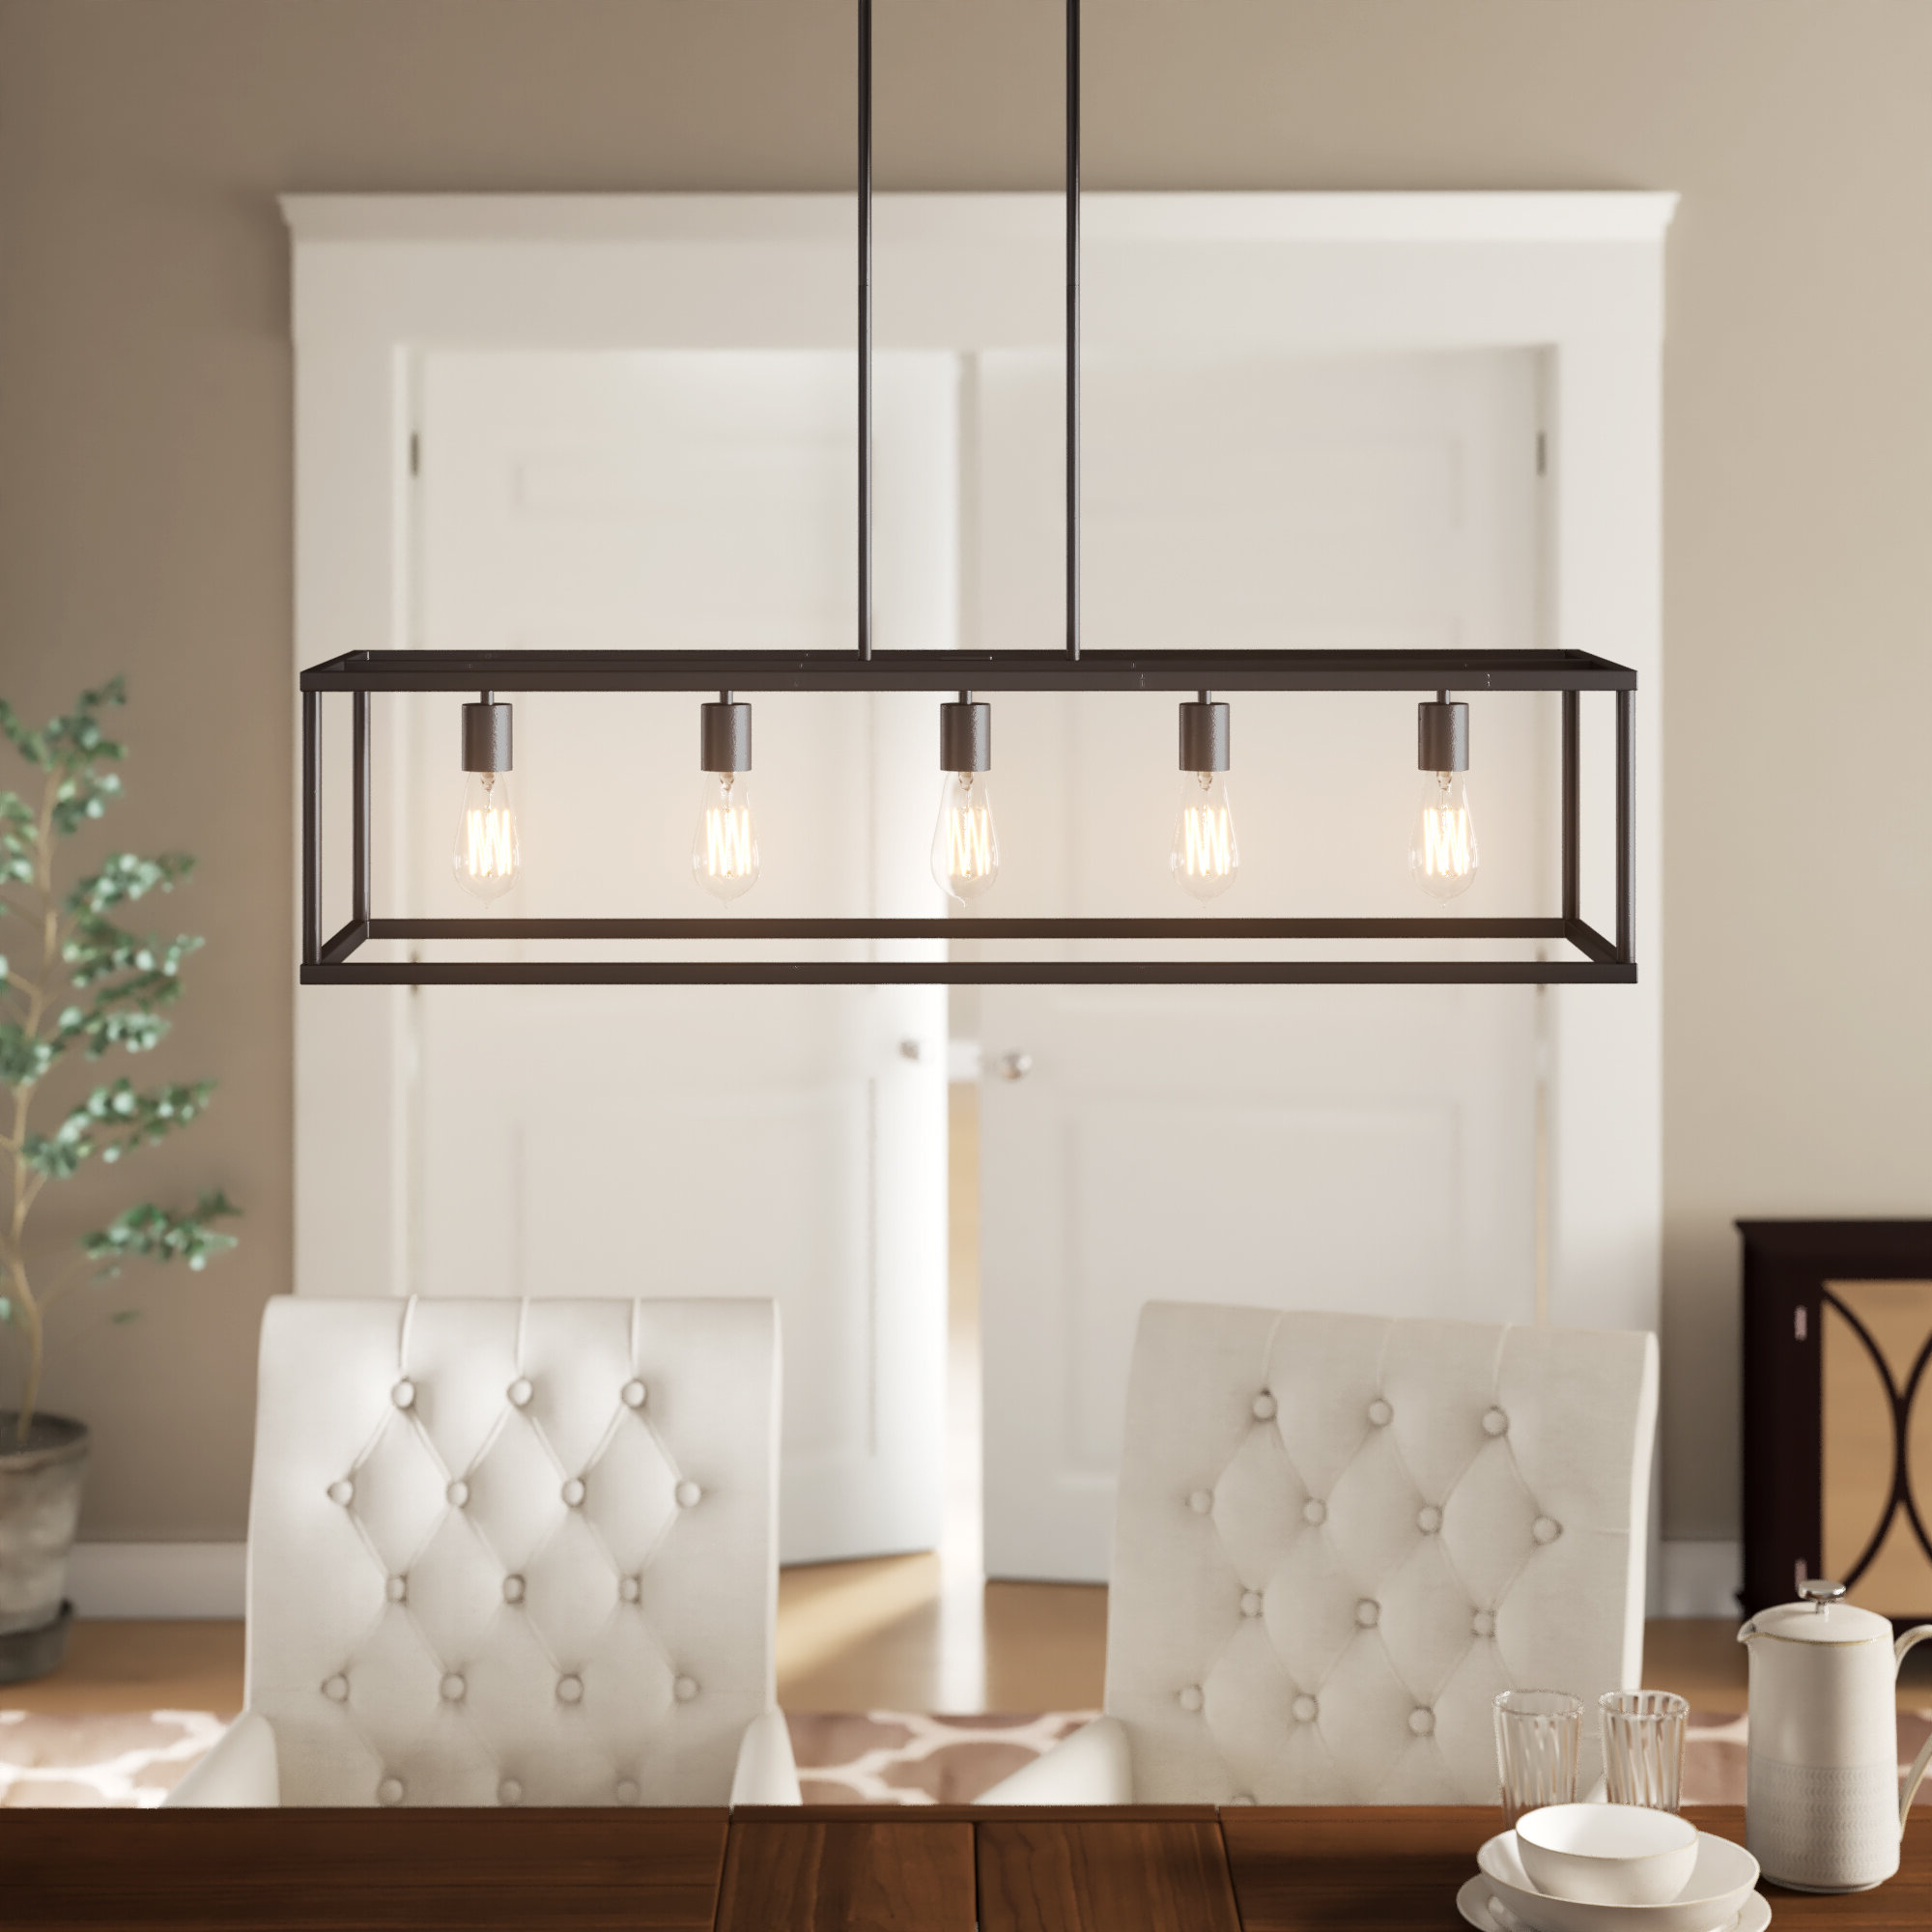 Most Recent Sousa 4 Light Kitchen Island Linear Pendants In Cassie 5 Light Kitchen Island Linear Pendant (View 10 of 25)